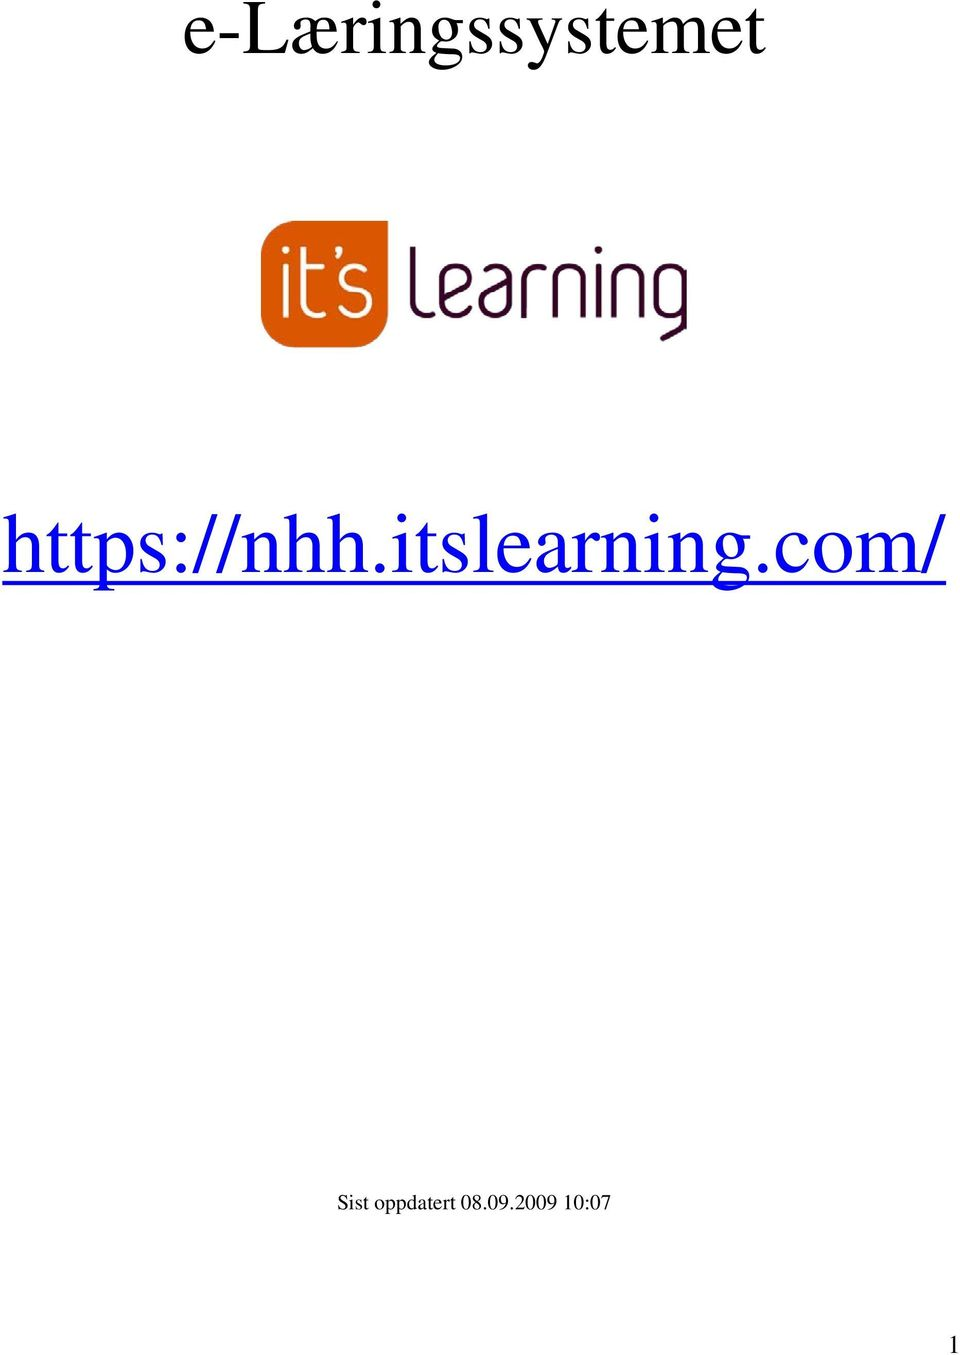 itslearning.